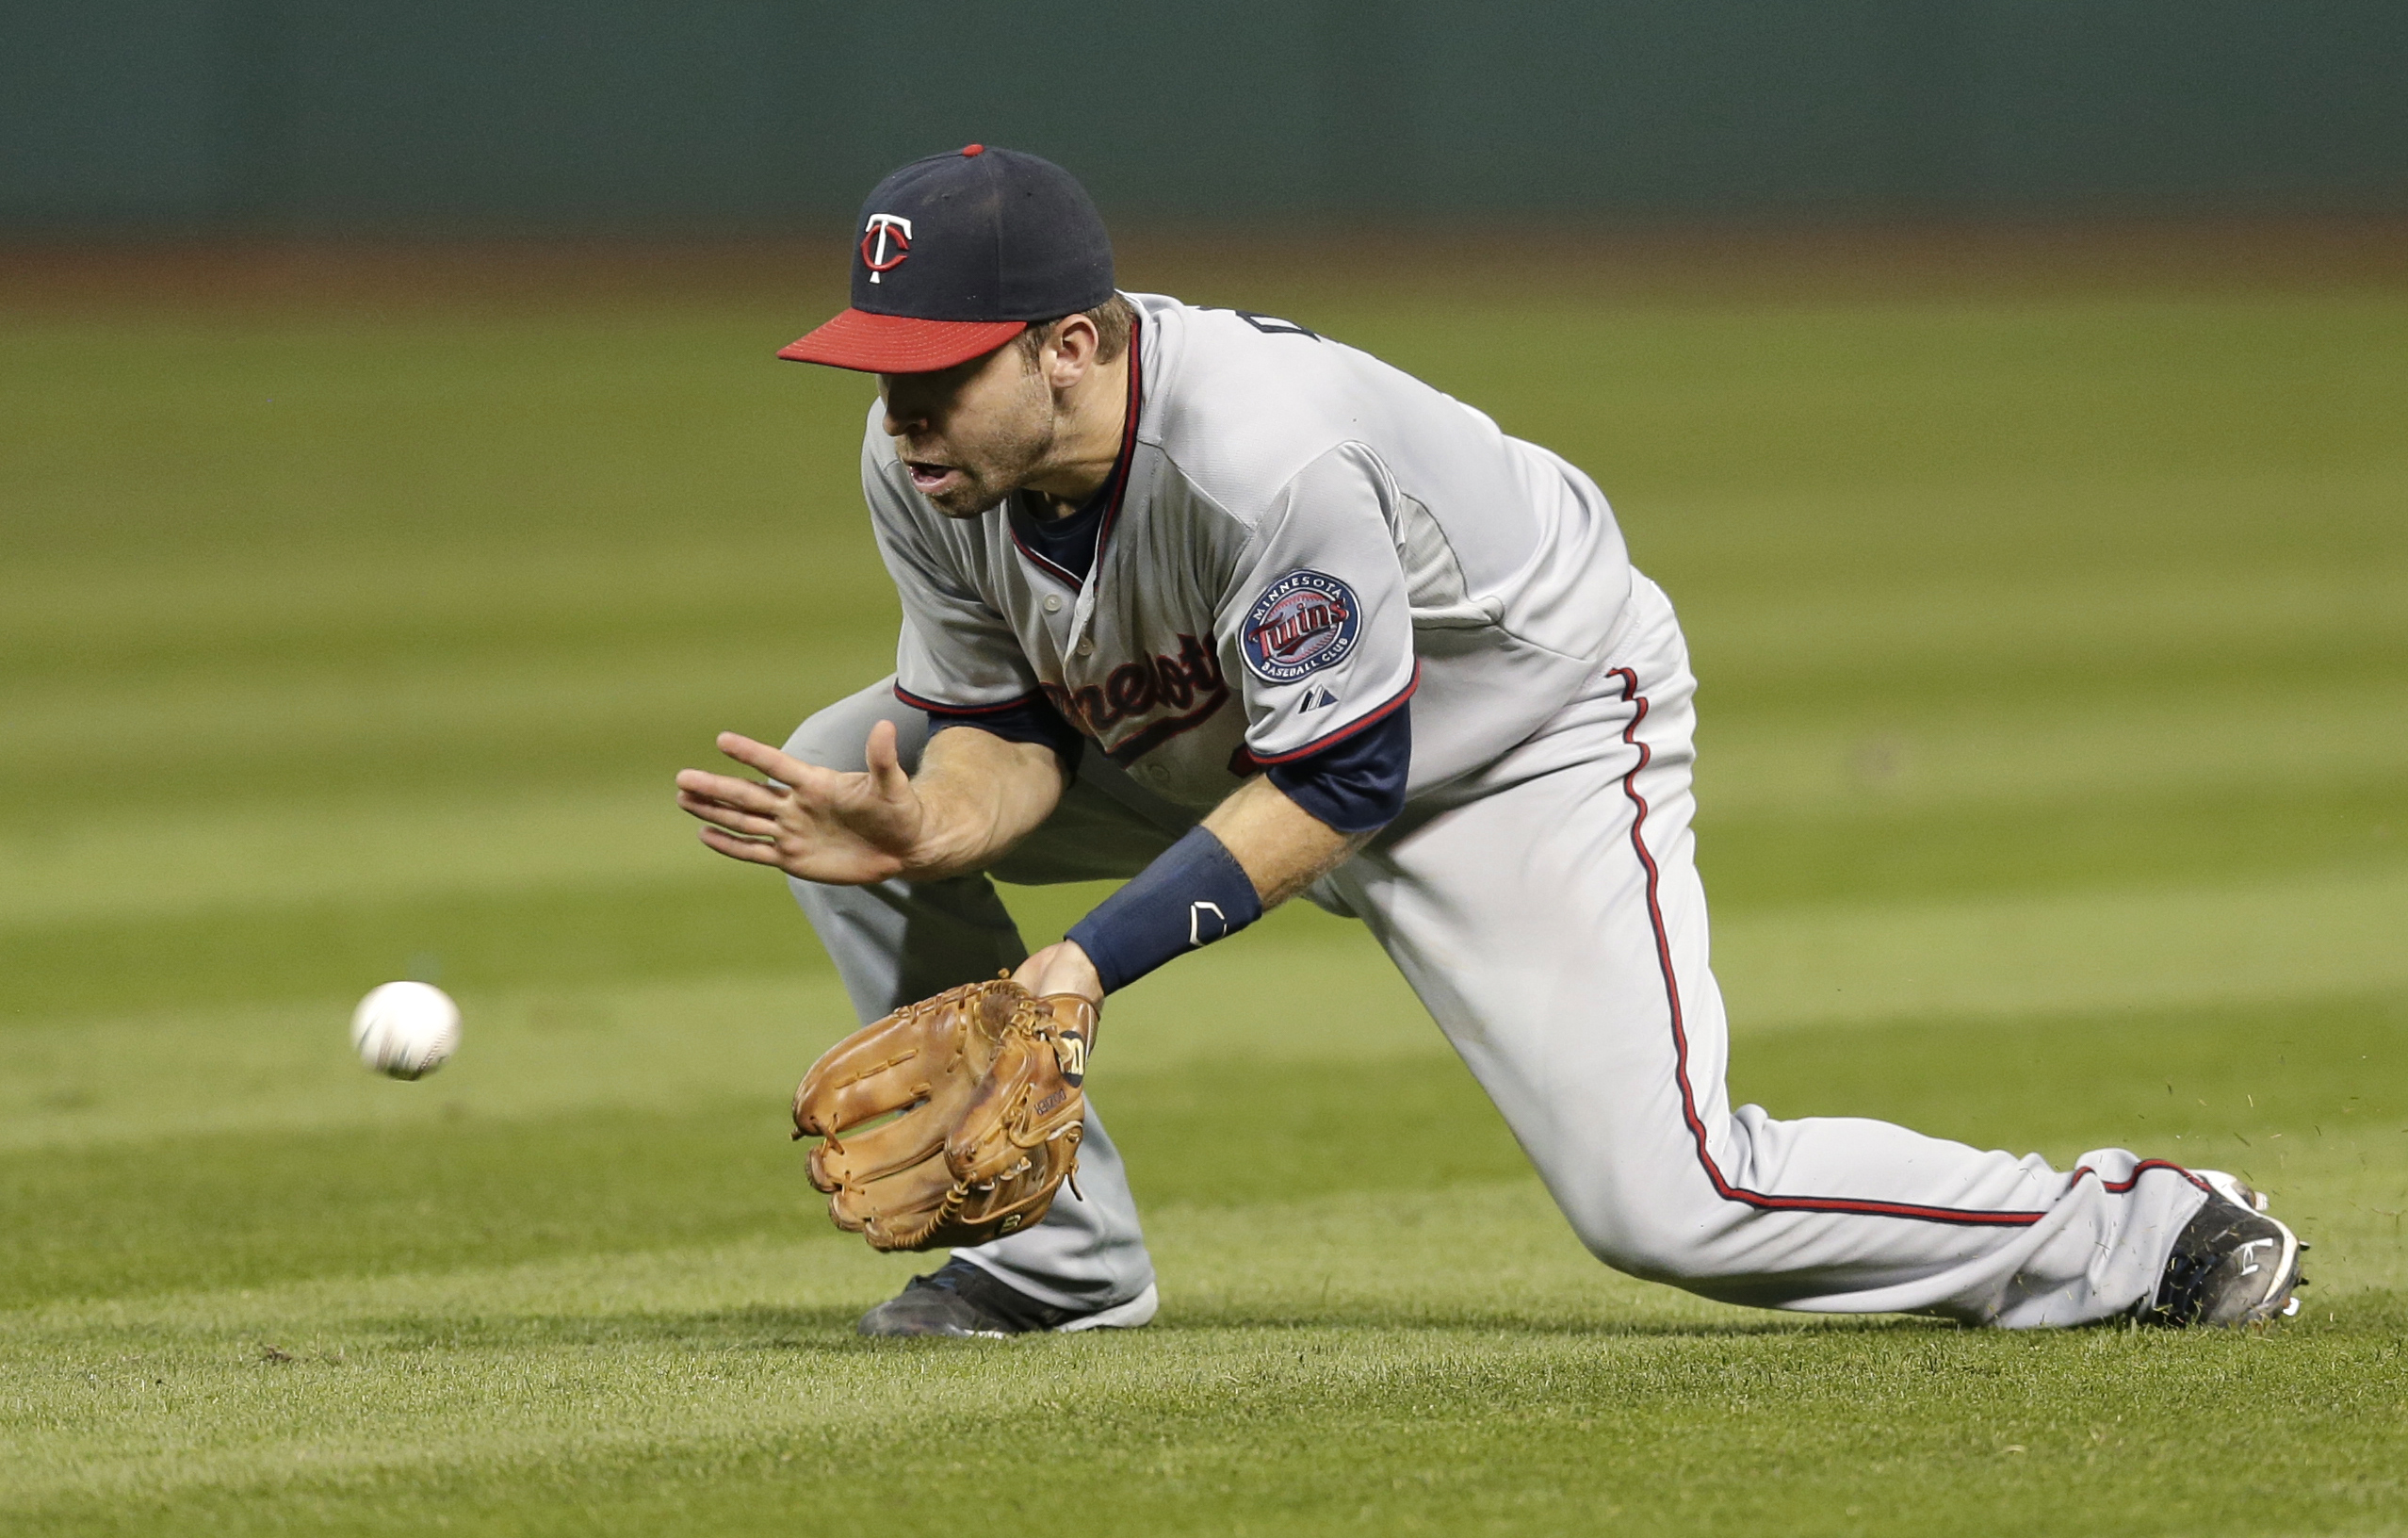 Minnesota Twins' Brian Dozier fields a ball hit by Cleveland Indians' Carlos Santana in the sixth inning of a baseball game, Monday, Sept. 28, 2015, in Cleveland. Santana was out on the play. (AP Photo/Tony Dejak)